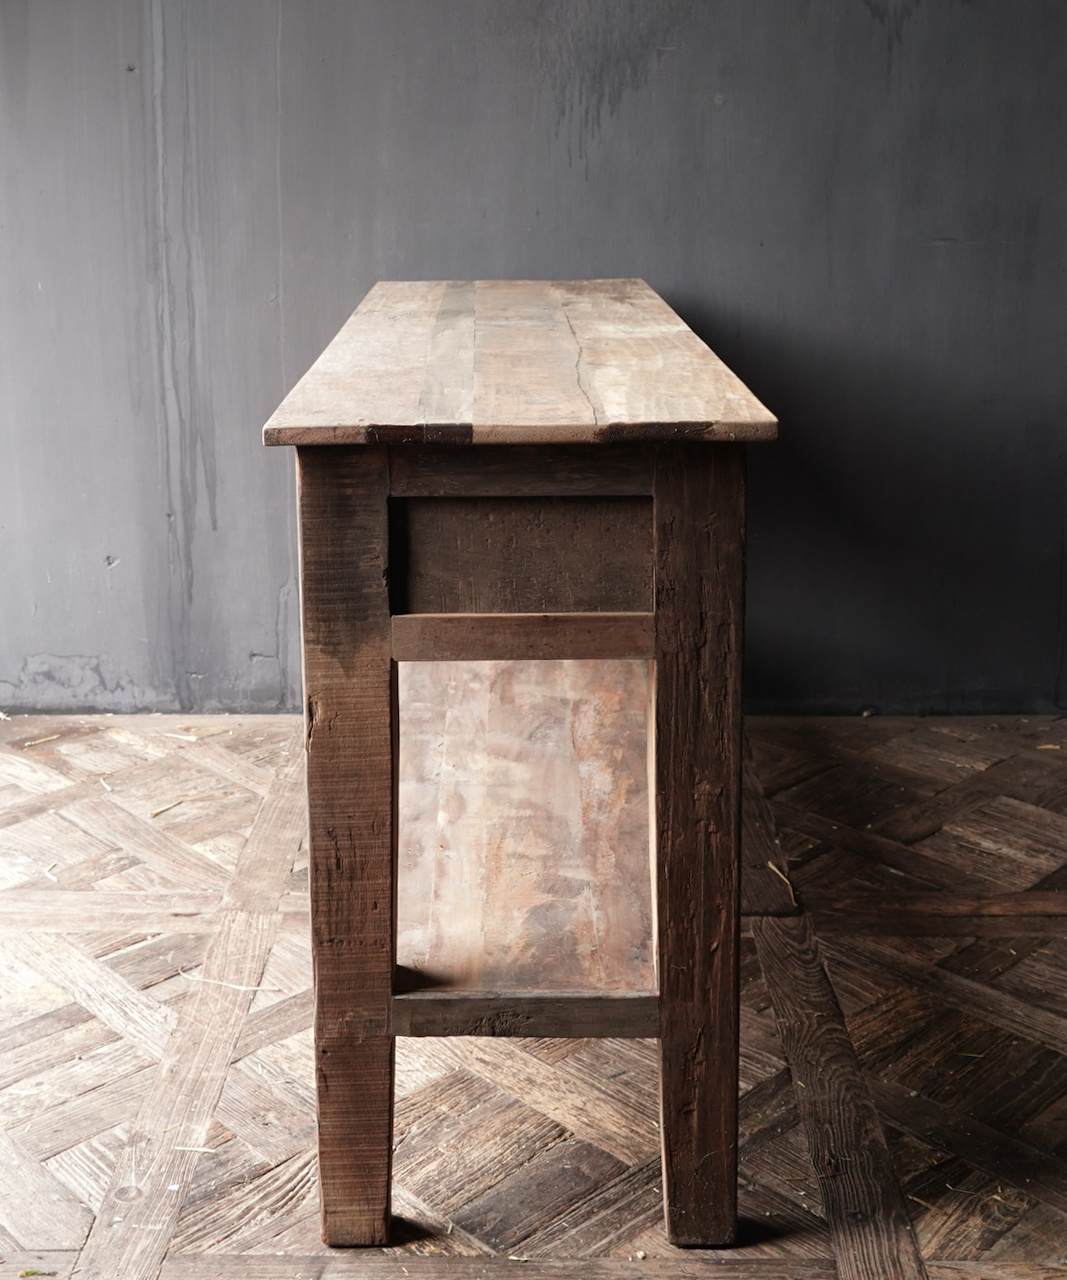 Stoer Robust old wooden side table or wall table with three drawers-4